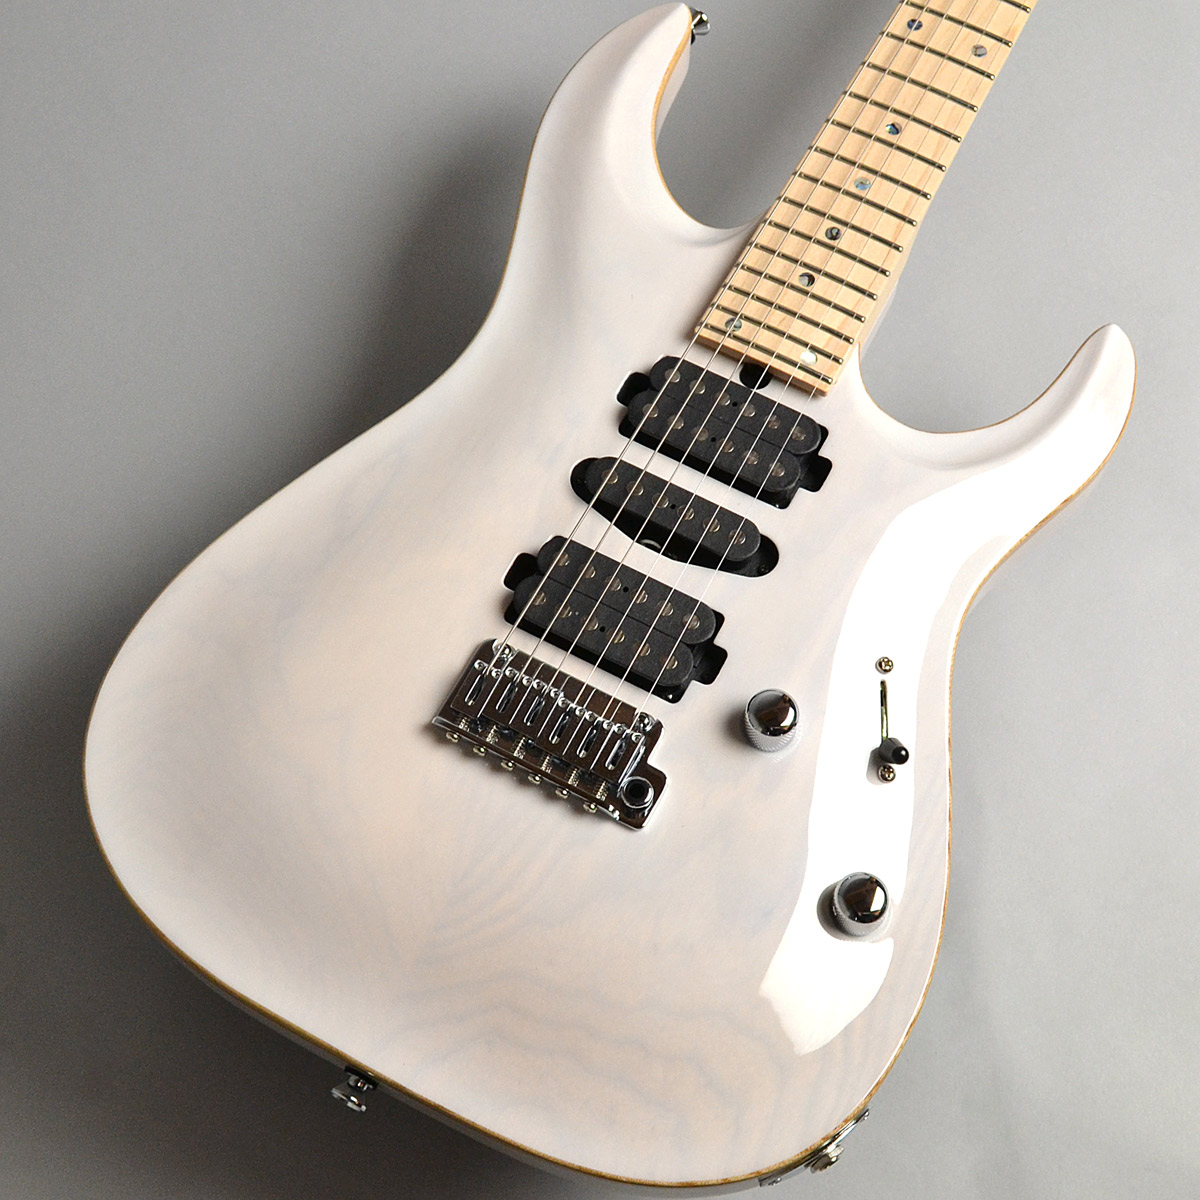 DST-24 Carvedtop/ASHのボディトップ-アップ画像